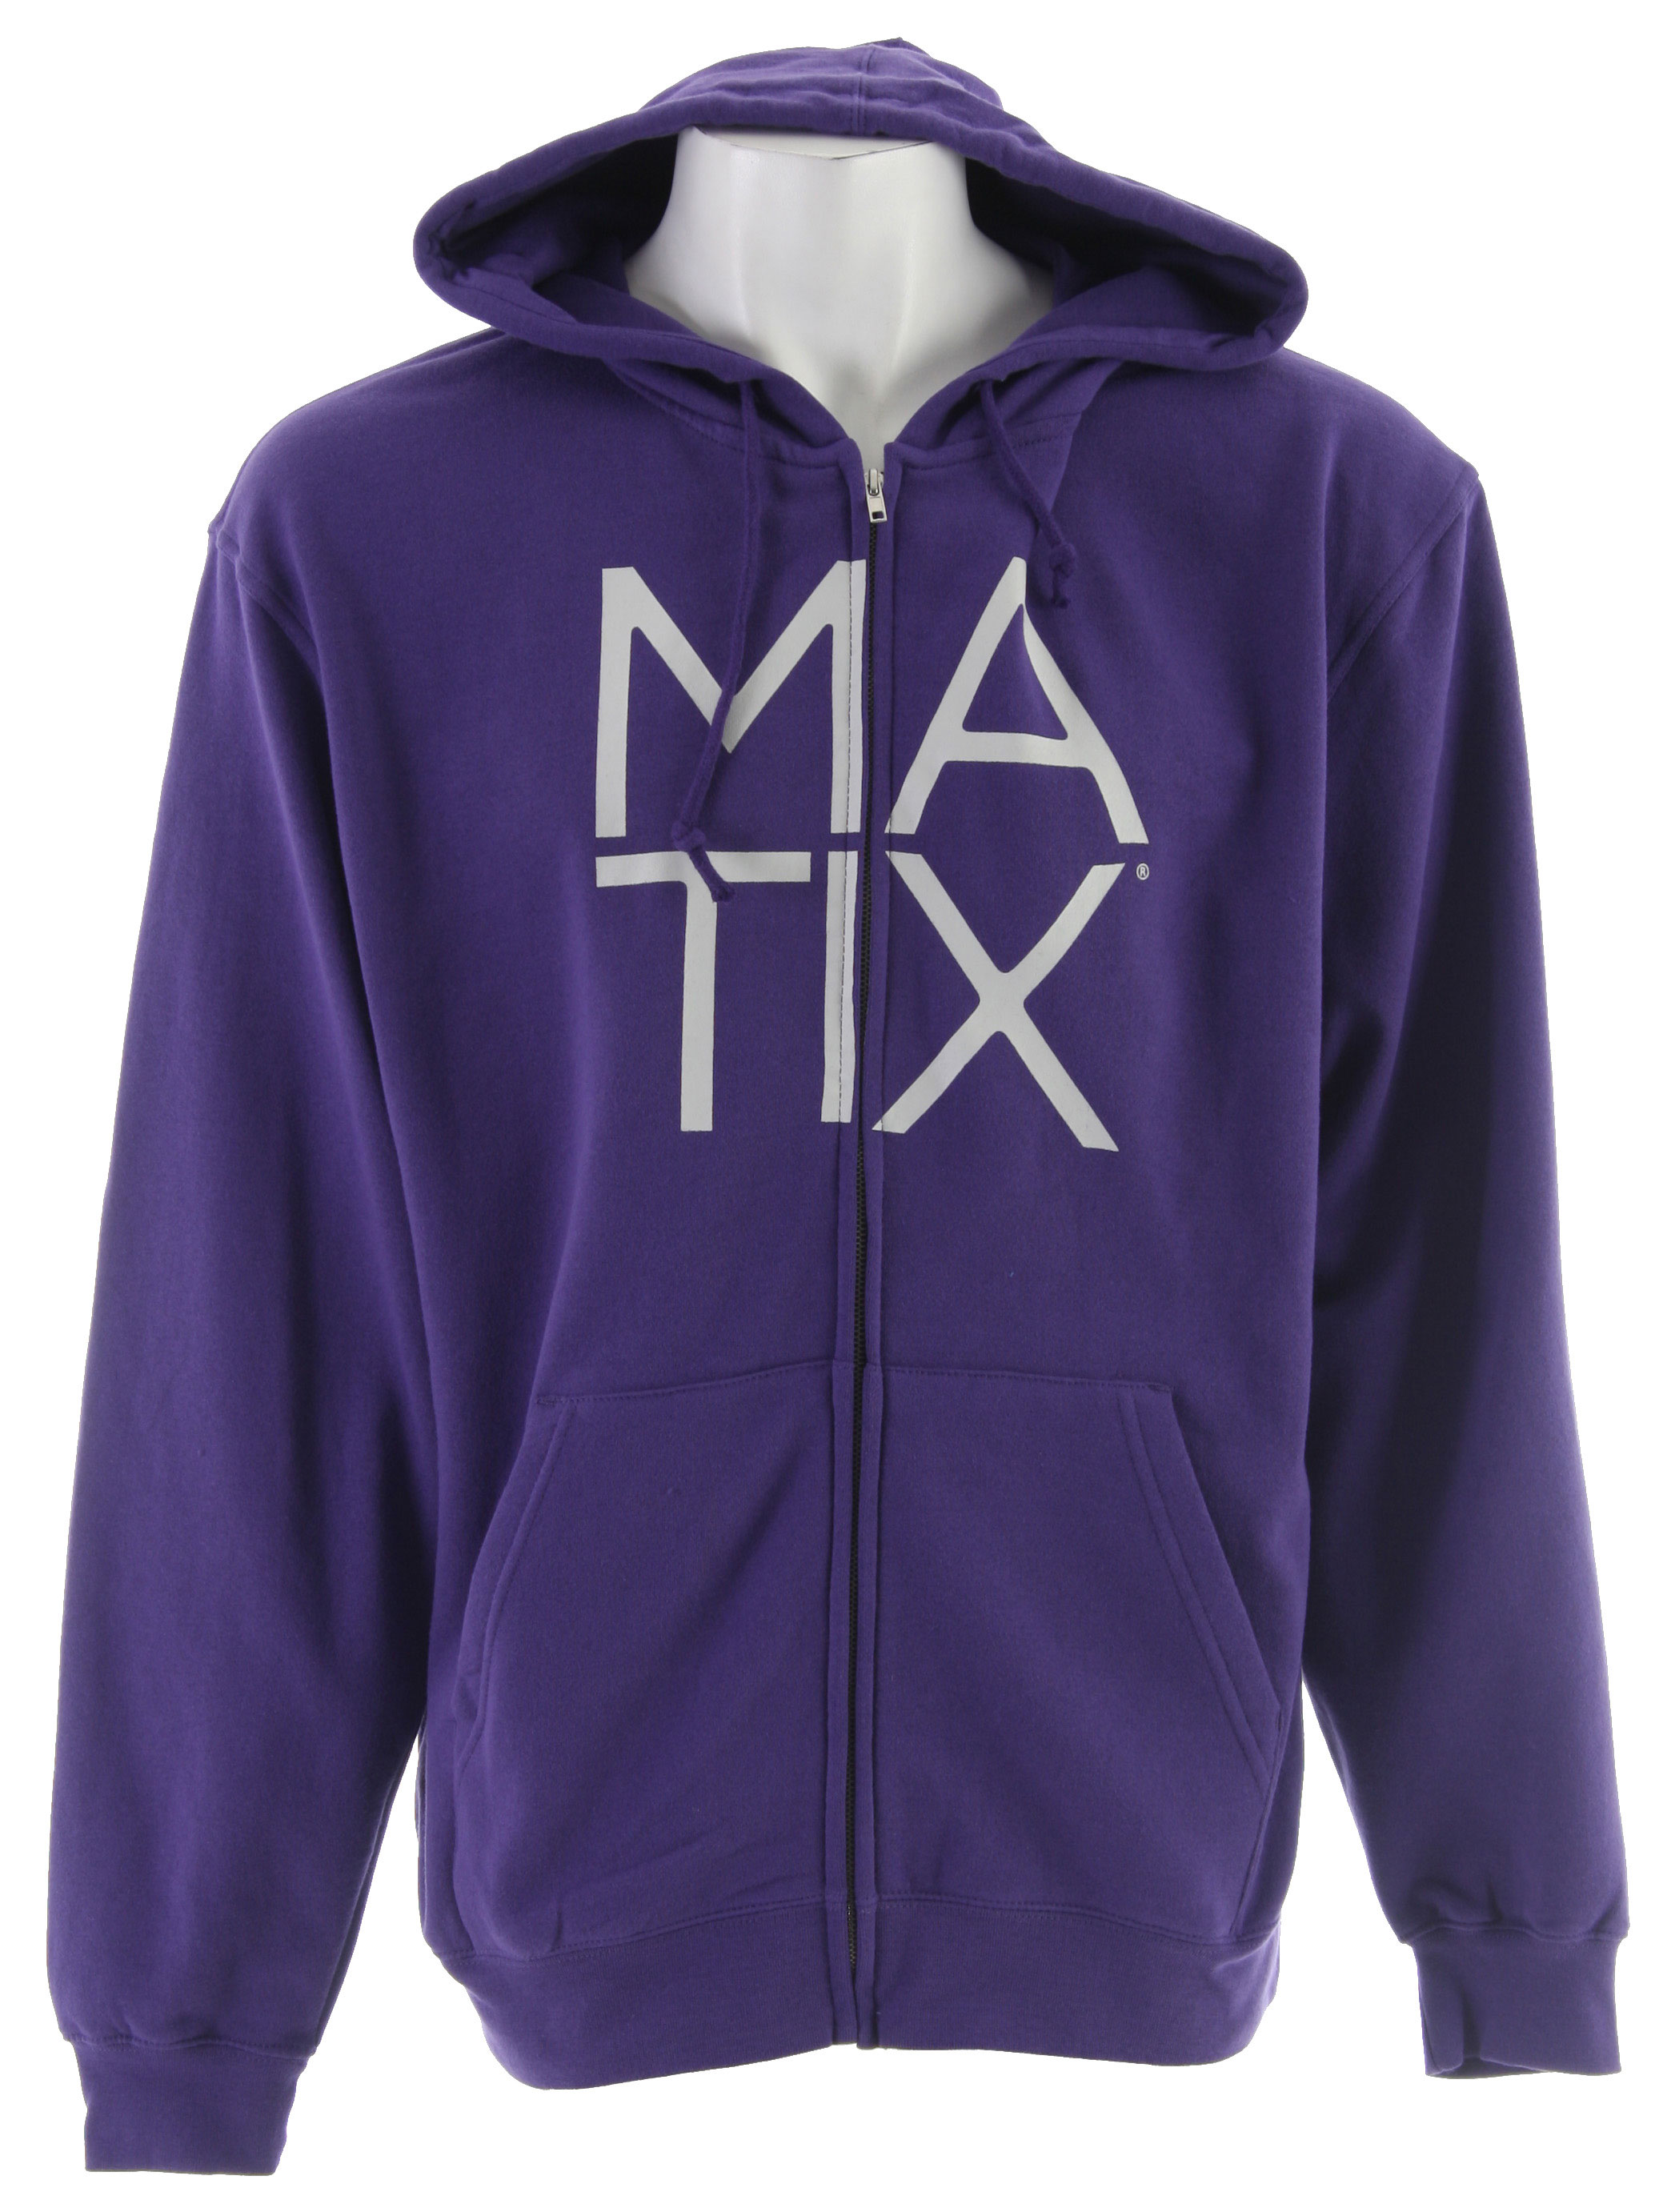 Are you looking for a hoodie that doesn't lose its shape you wash it one time. You will love the Matix Monostack Purple Hoodie. The ease of not having to wear a big coat when you can just throw on your hoodie and keep it zipped or open and if it gets windy or cooler it has the drawstrings too. I wear mine waiting for the bus in the morning or walking my dogs. And it feels so soft you forget you even have it on. Inside or outside you'll be wearing this all the time.Key Features of the Matix Monostack Hoodie: 80% Cotton/20% Poly french terry Center chest inkprint with monovert back print - $31.95